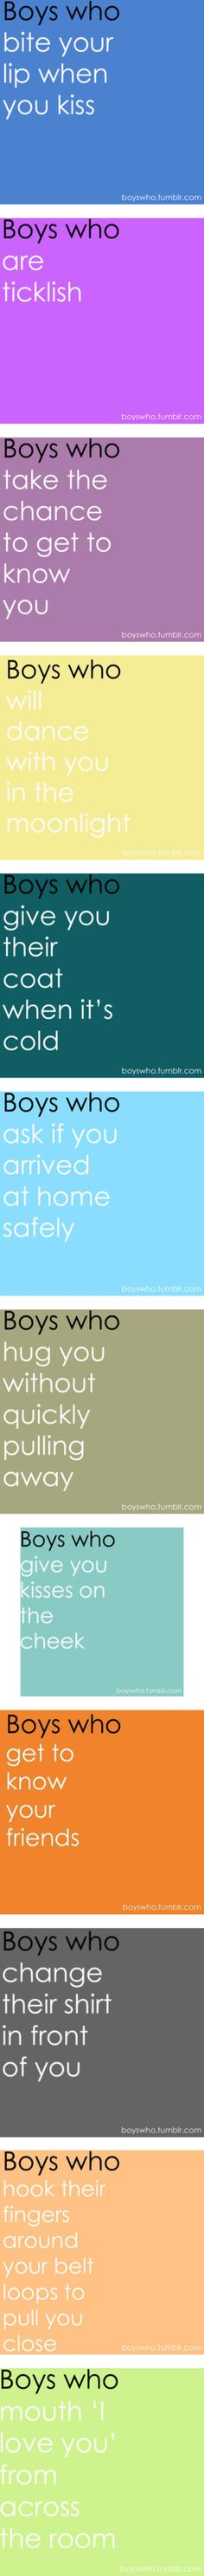 """I like Boys who..."" by i-am-the-girl-on-fire on Polyvore"